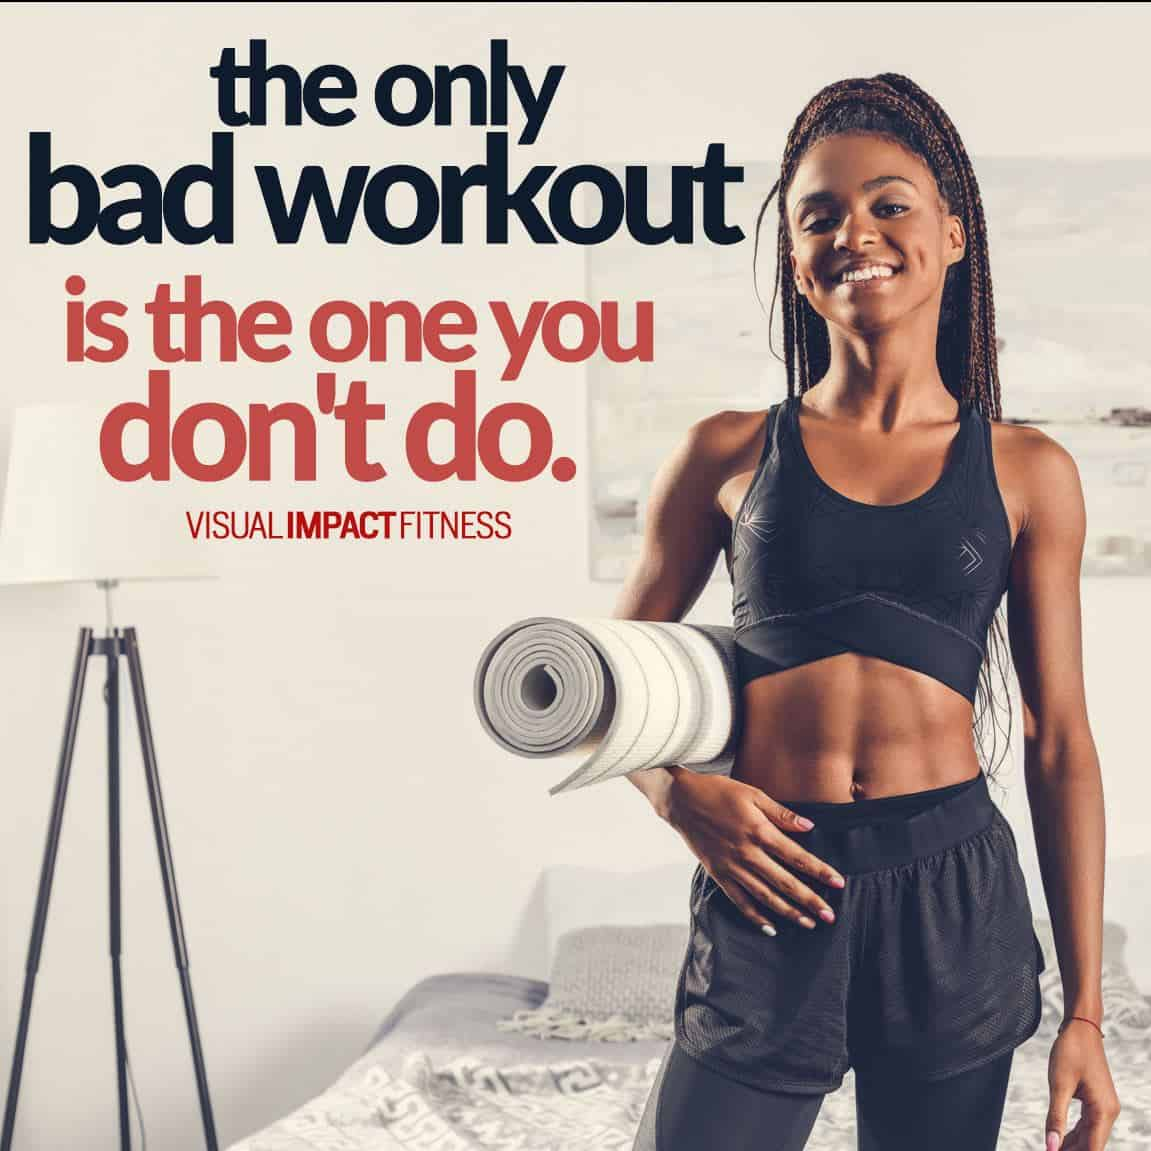 The only bad workout is the one you don't do